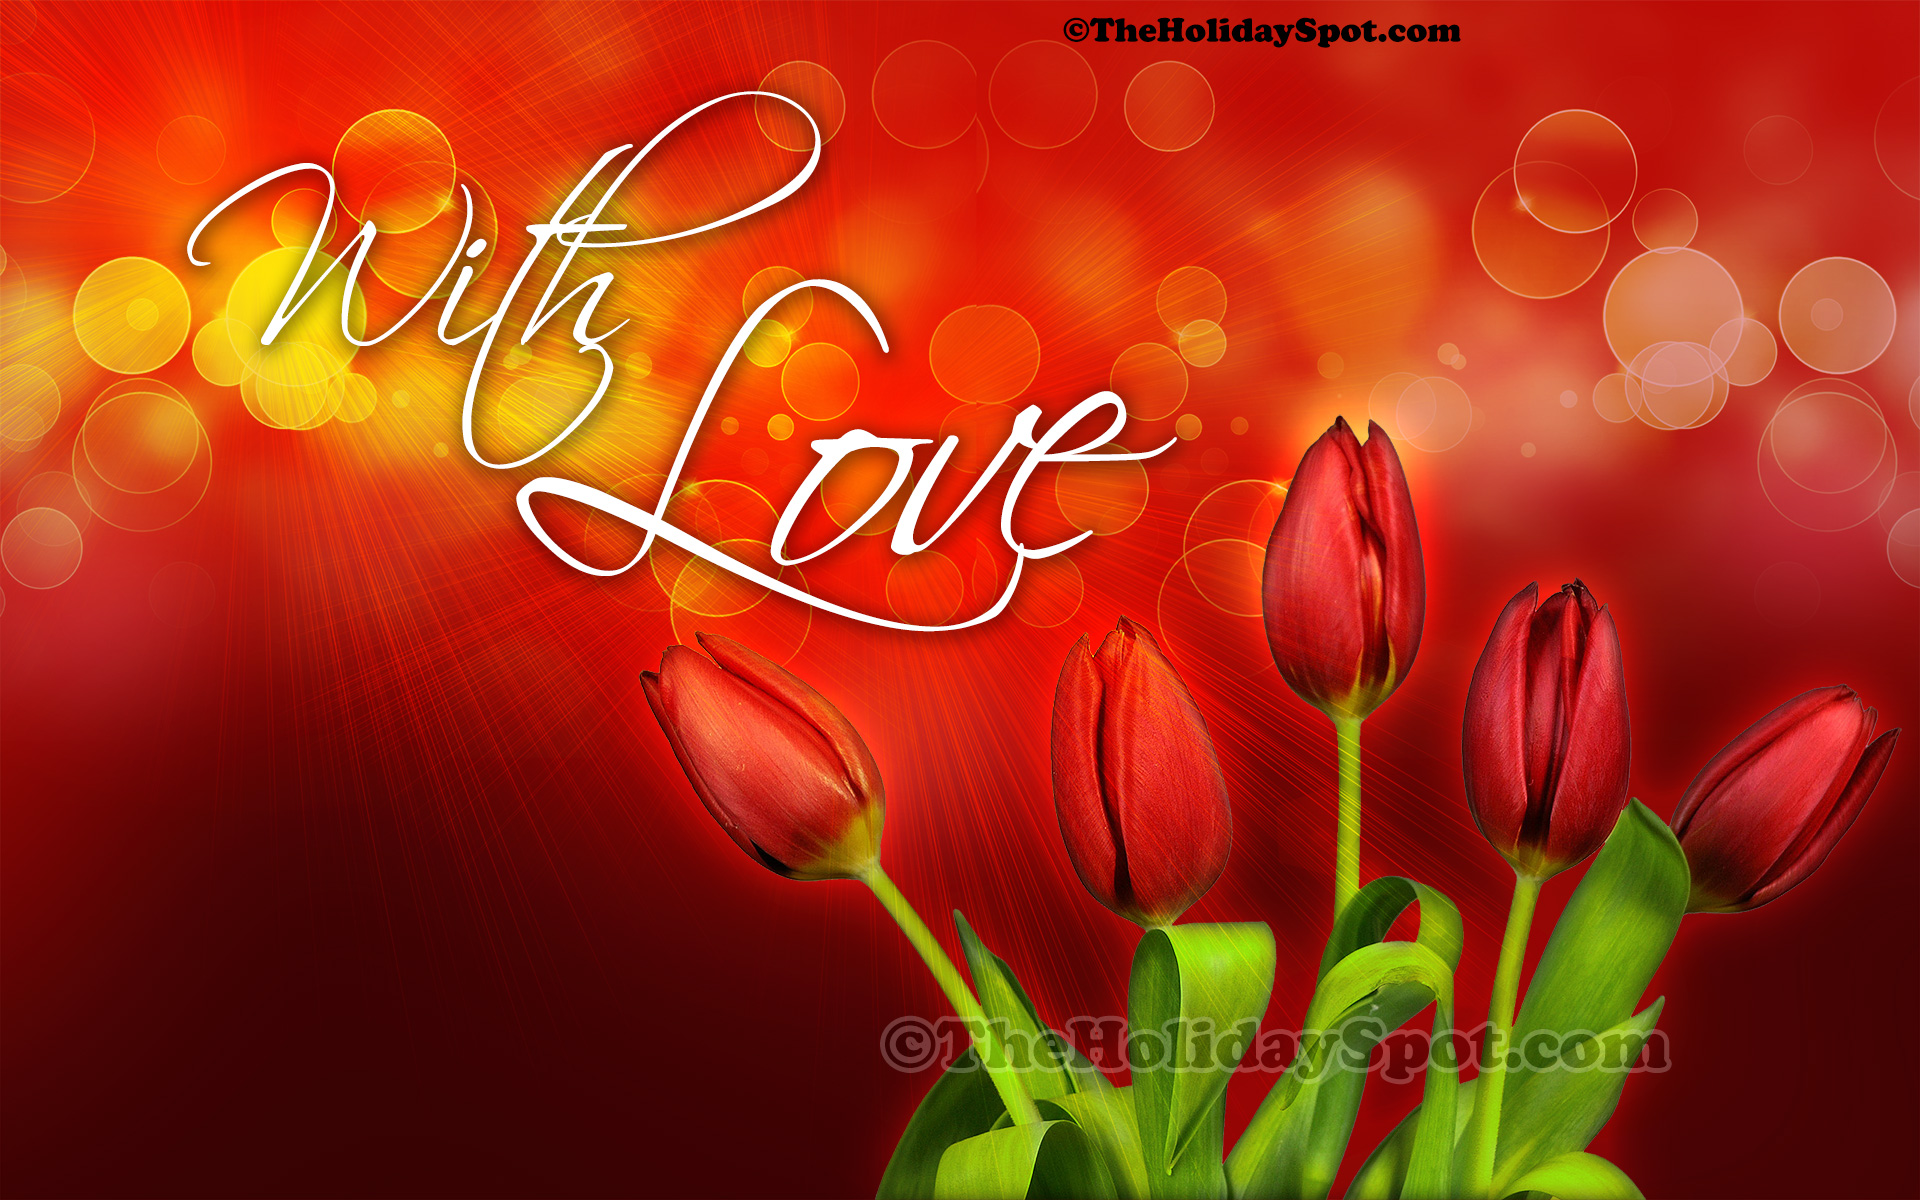 Beautiful Wallpaper Love High Quality - with-love  Snapshot_172588.jpg